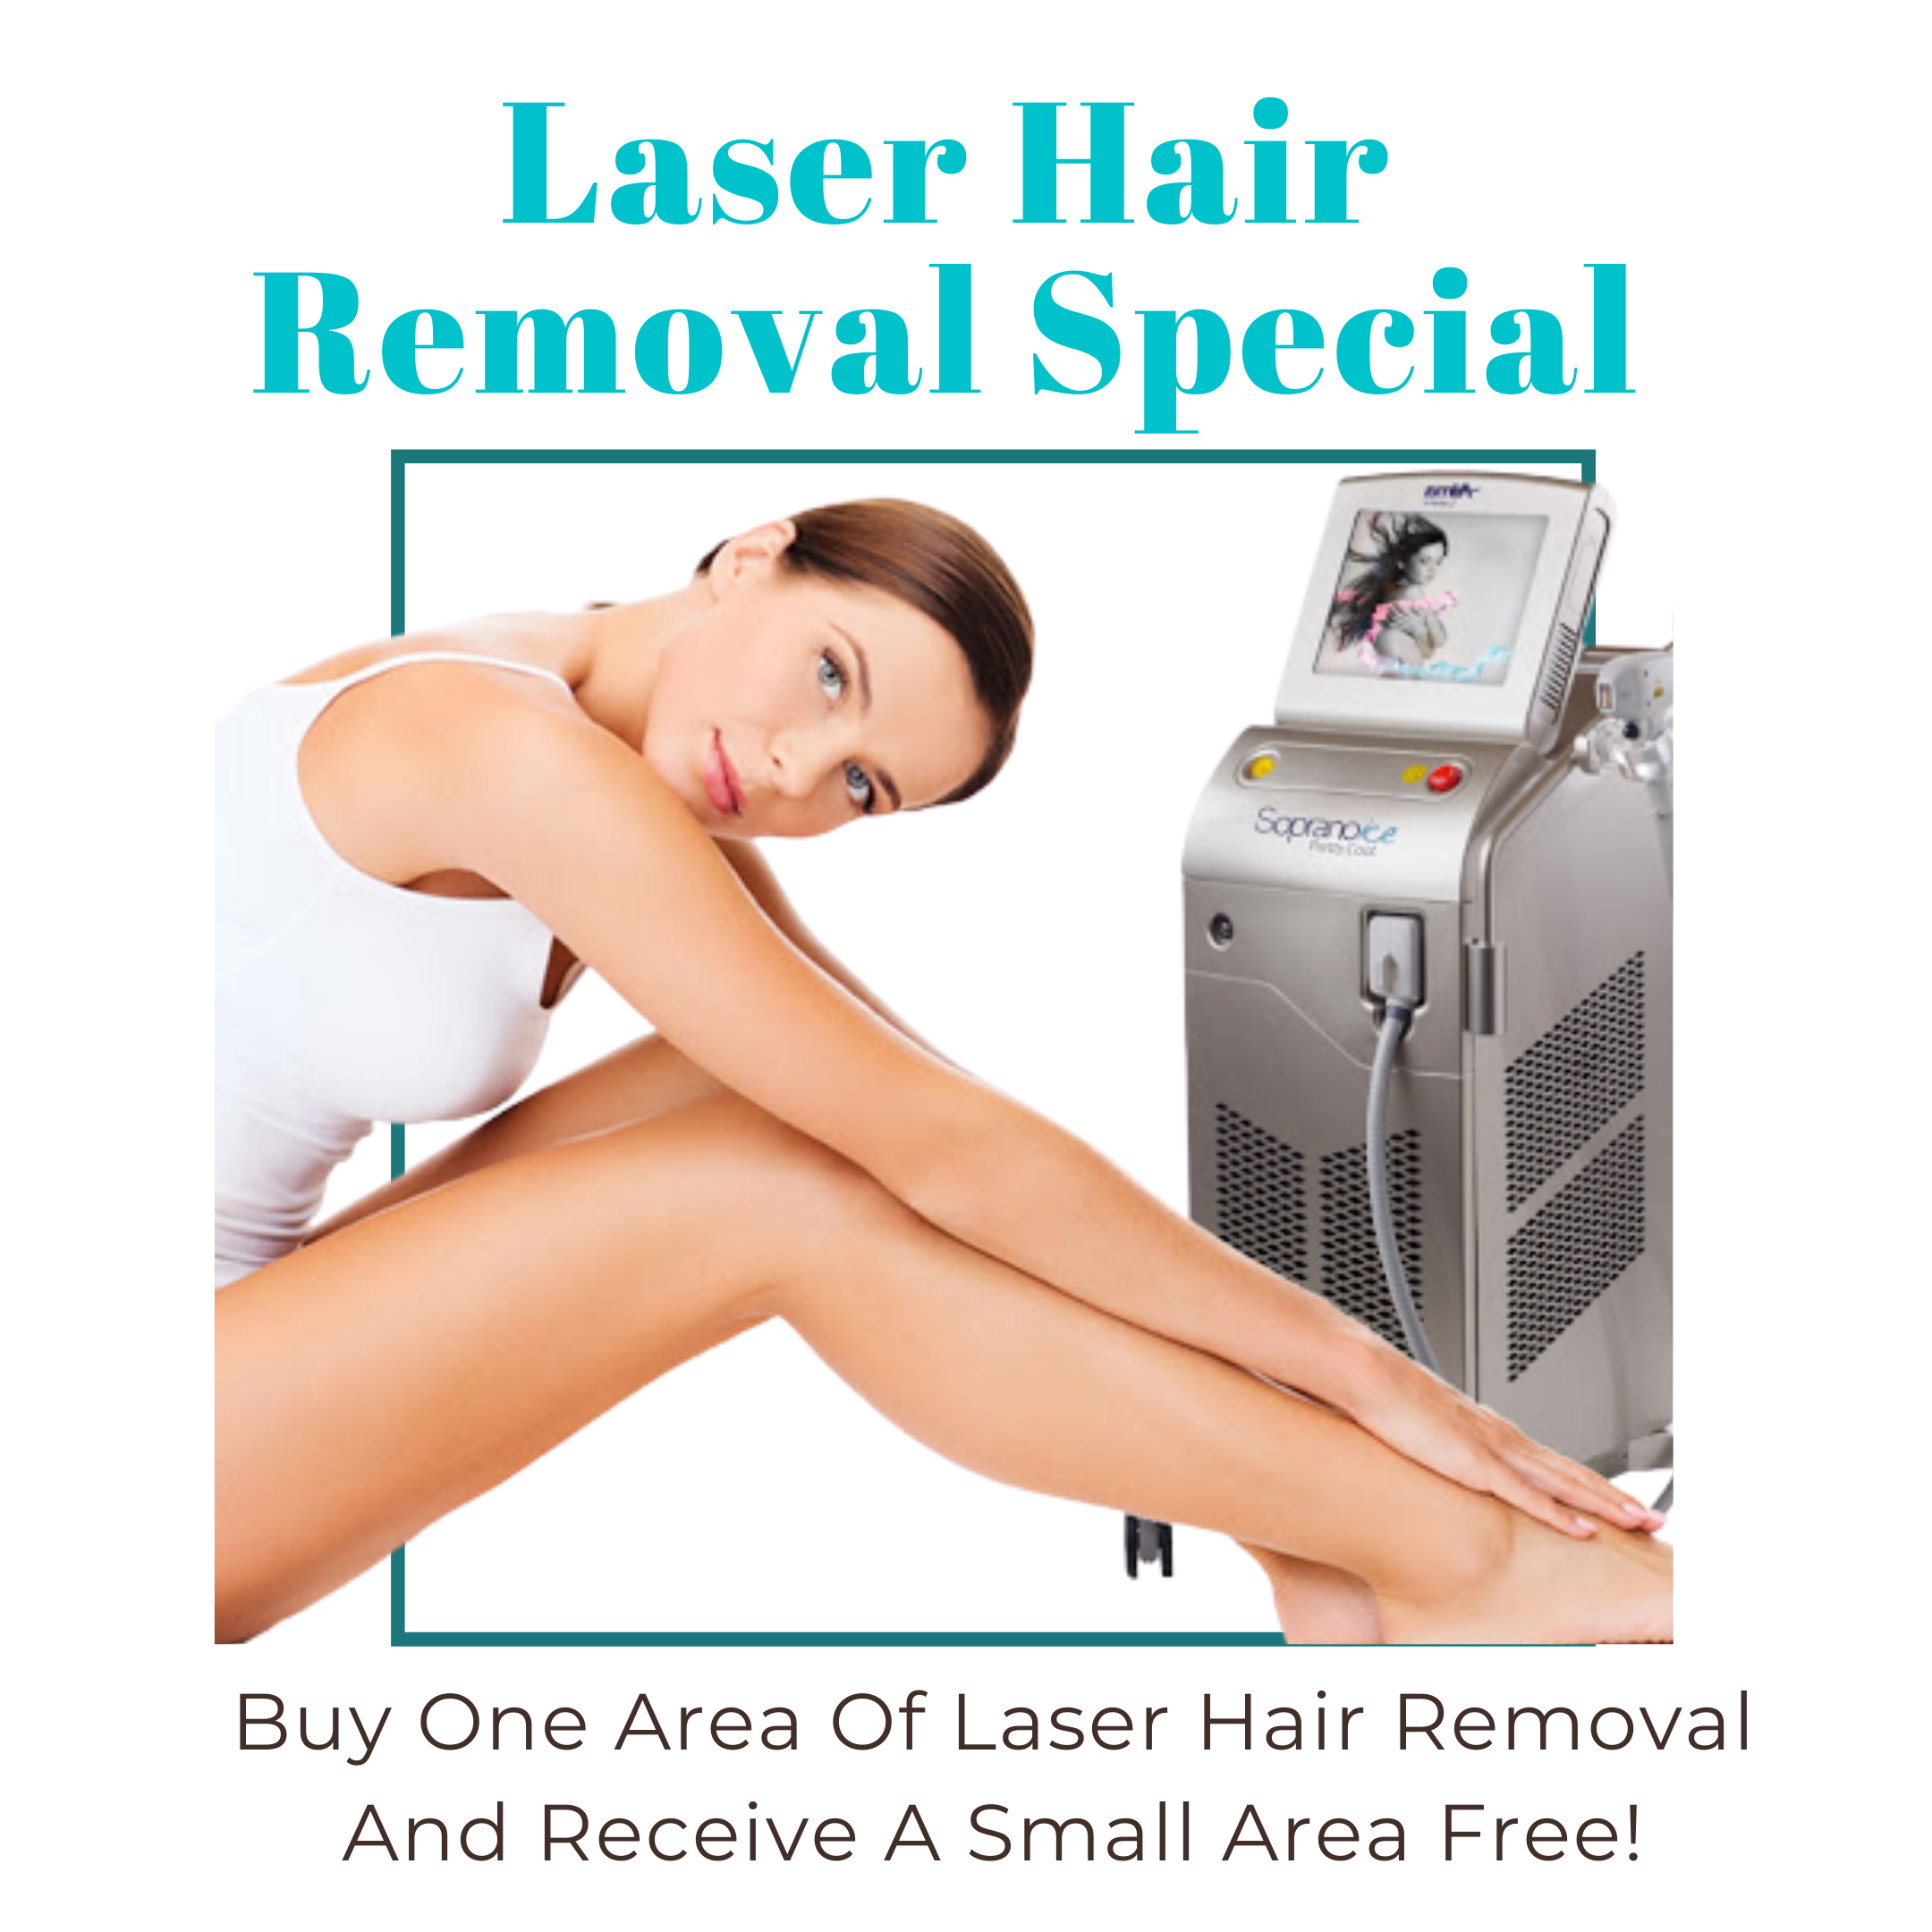 Laser Hair Removal Special